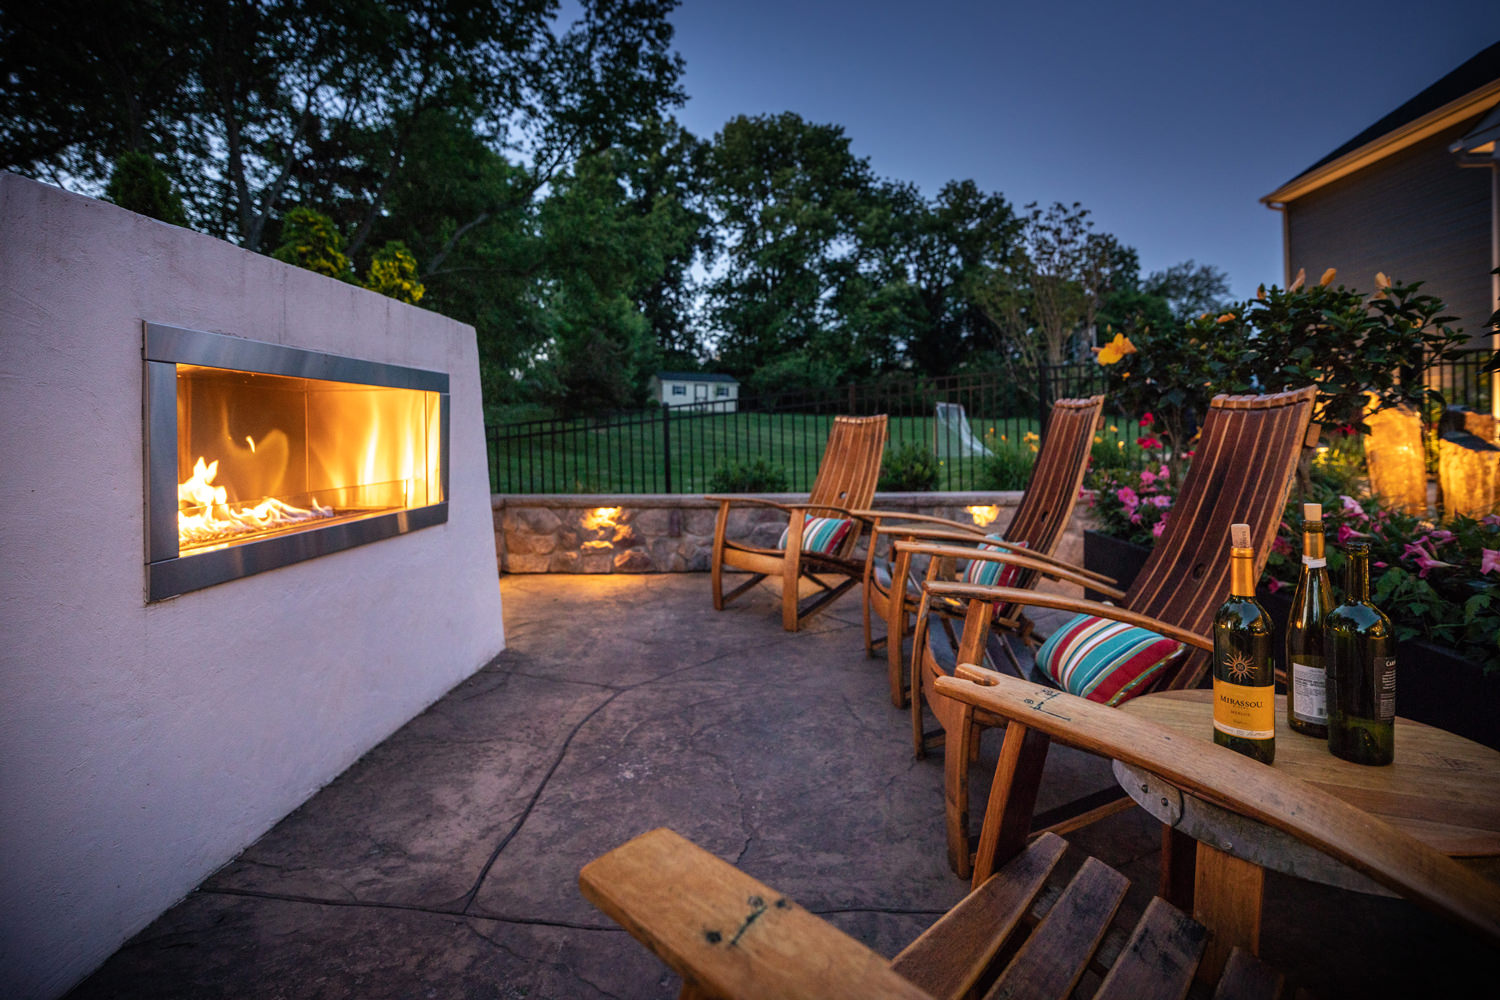 When the sun sets low, this outdoor living space comes alive!  Low voltage accent lighting beautifully highlights the features and colorful plantings around the patio while the fireplace adds warmth and a romantic ambiance to the environment.